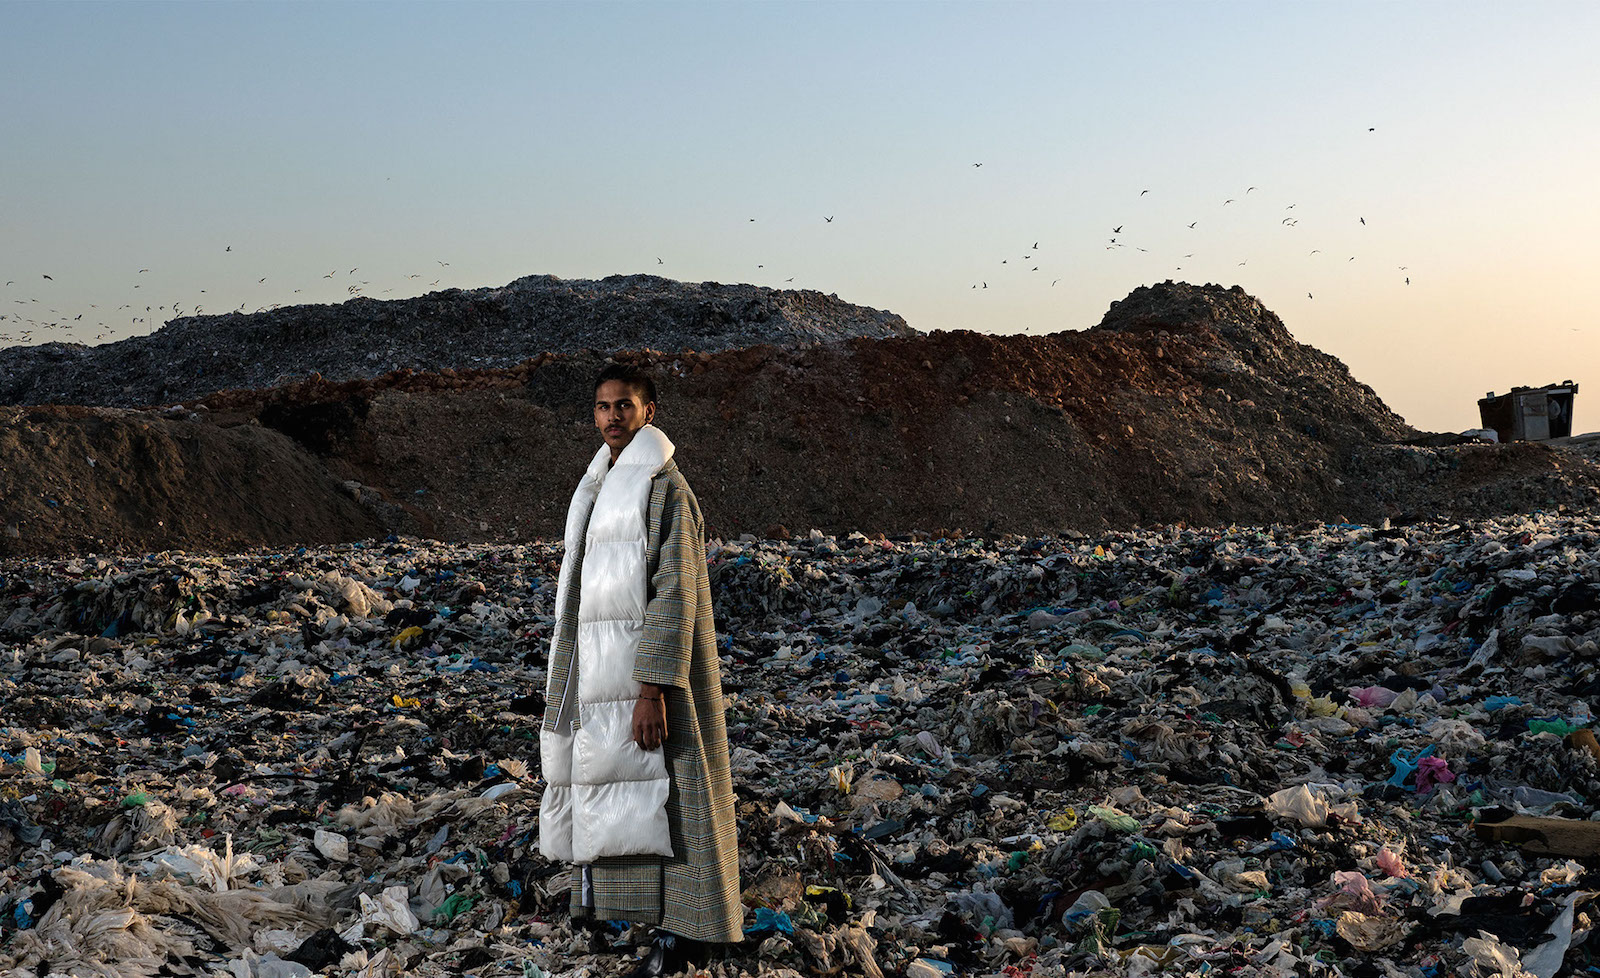 This Lebanese Designer's New Shoot on 'Garbage Mountain' is a Reminder of the Unsolved Trash Crisis